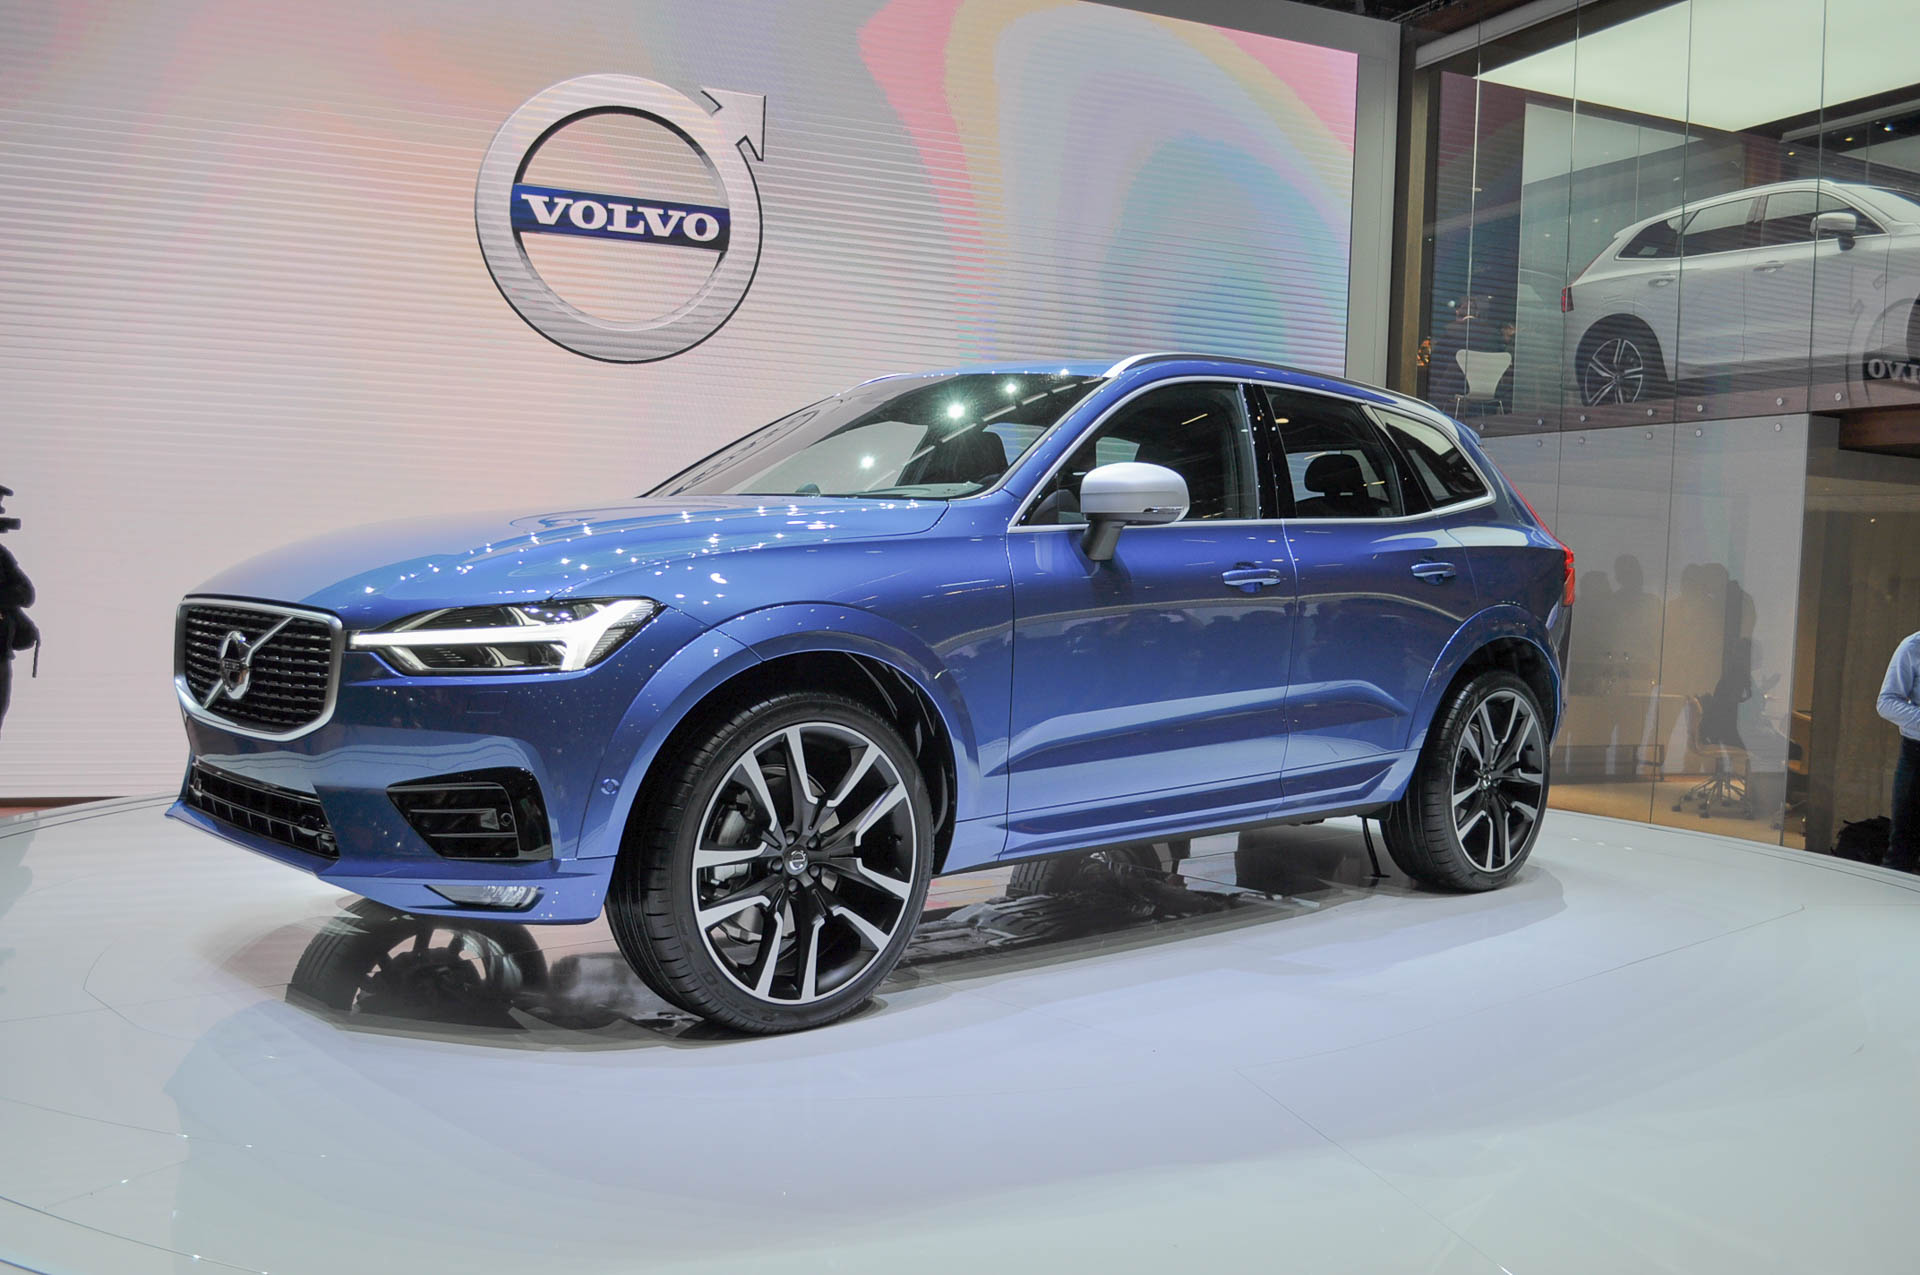 2018 volvo denim blue.  volvo 2018 volvo xc60 redesigned priced from 42495 in volvo denim blue